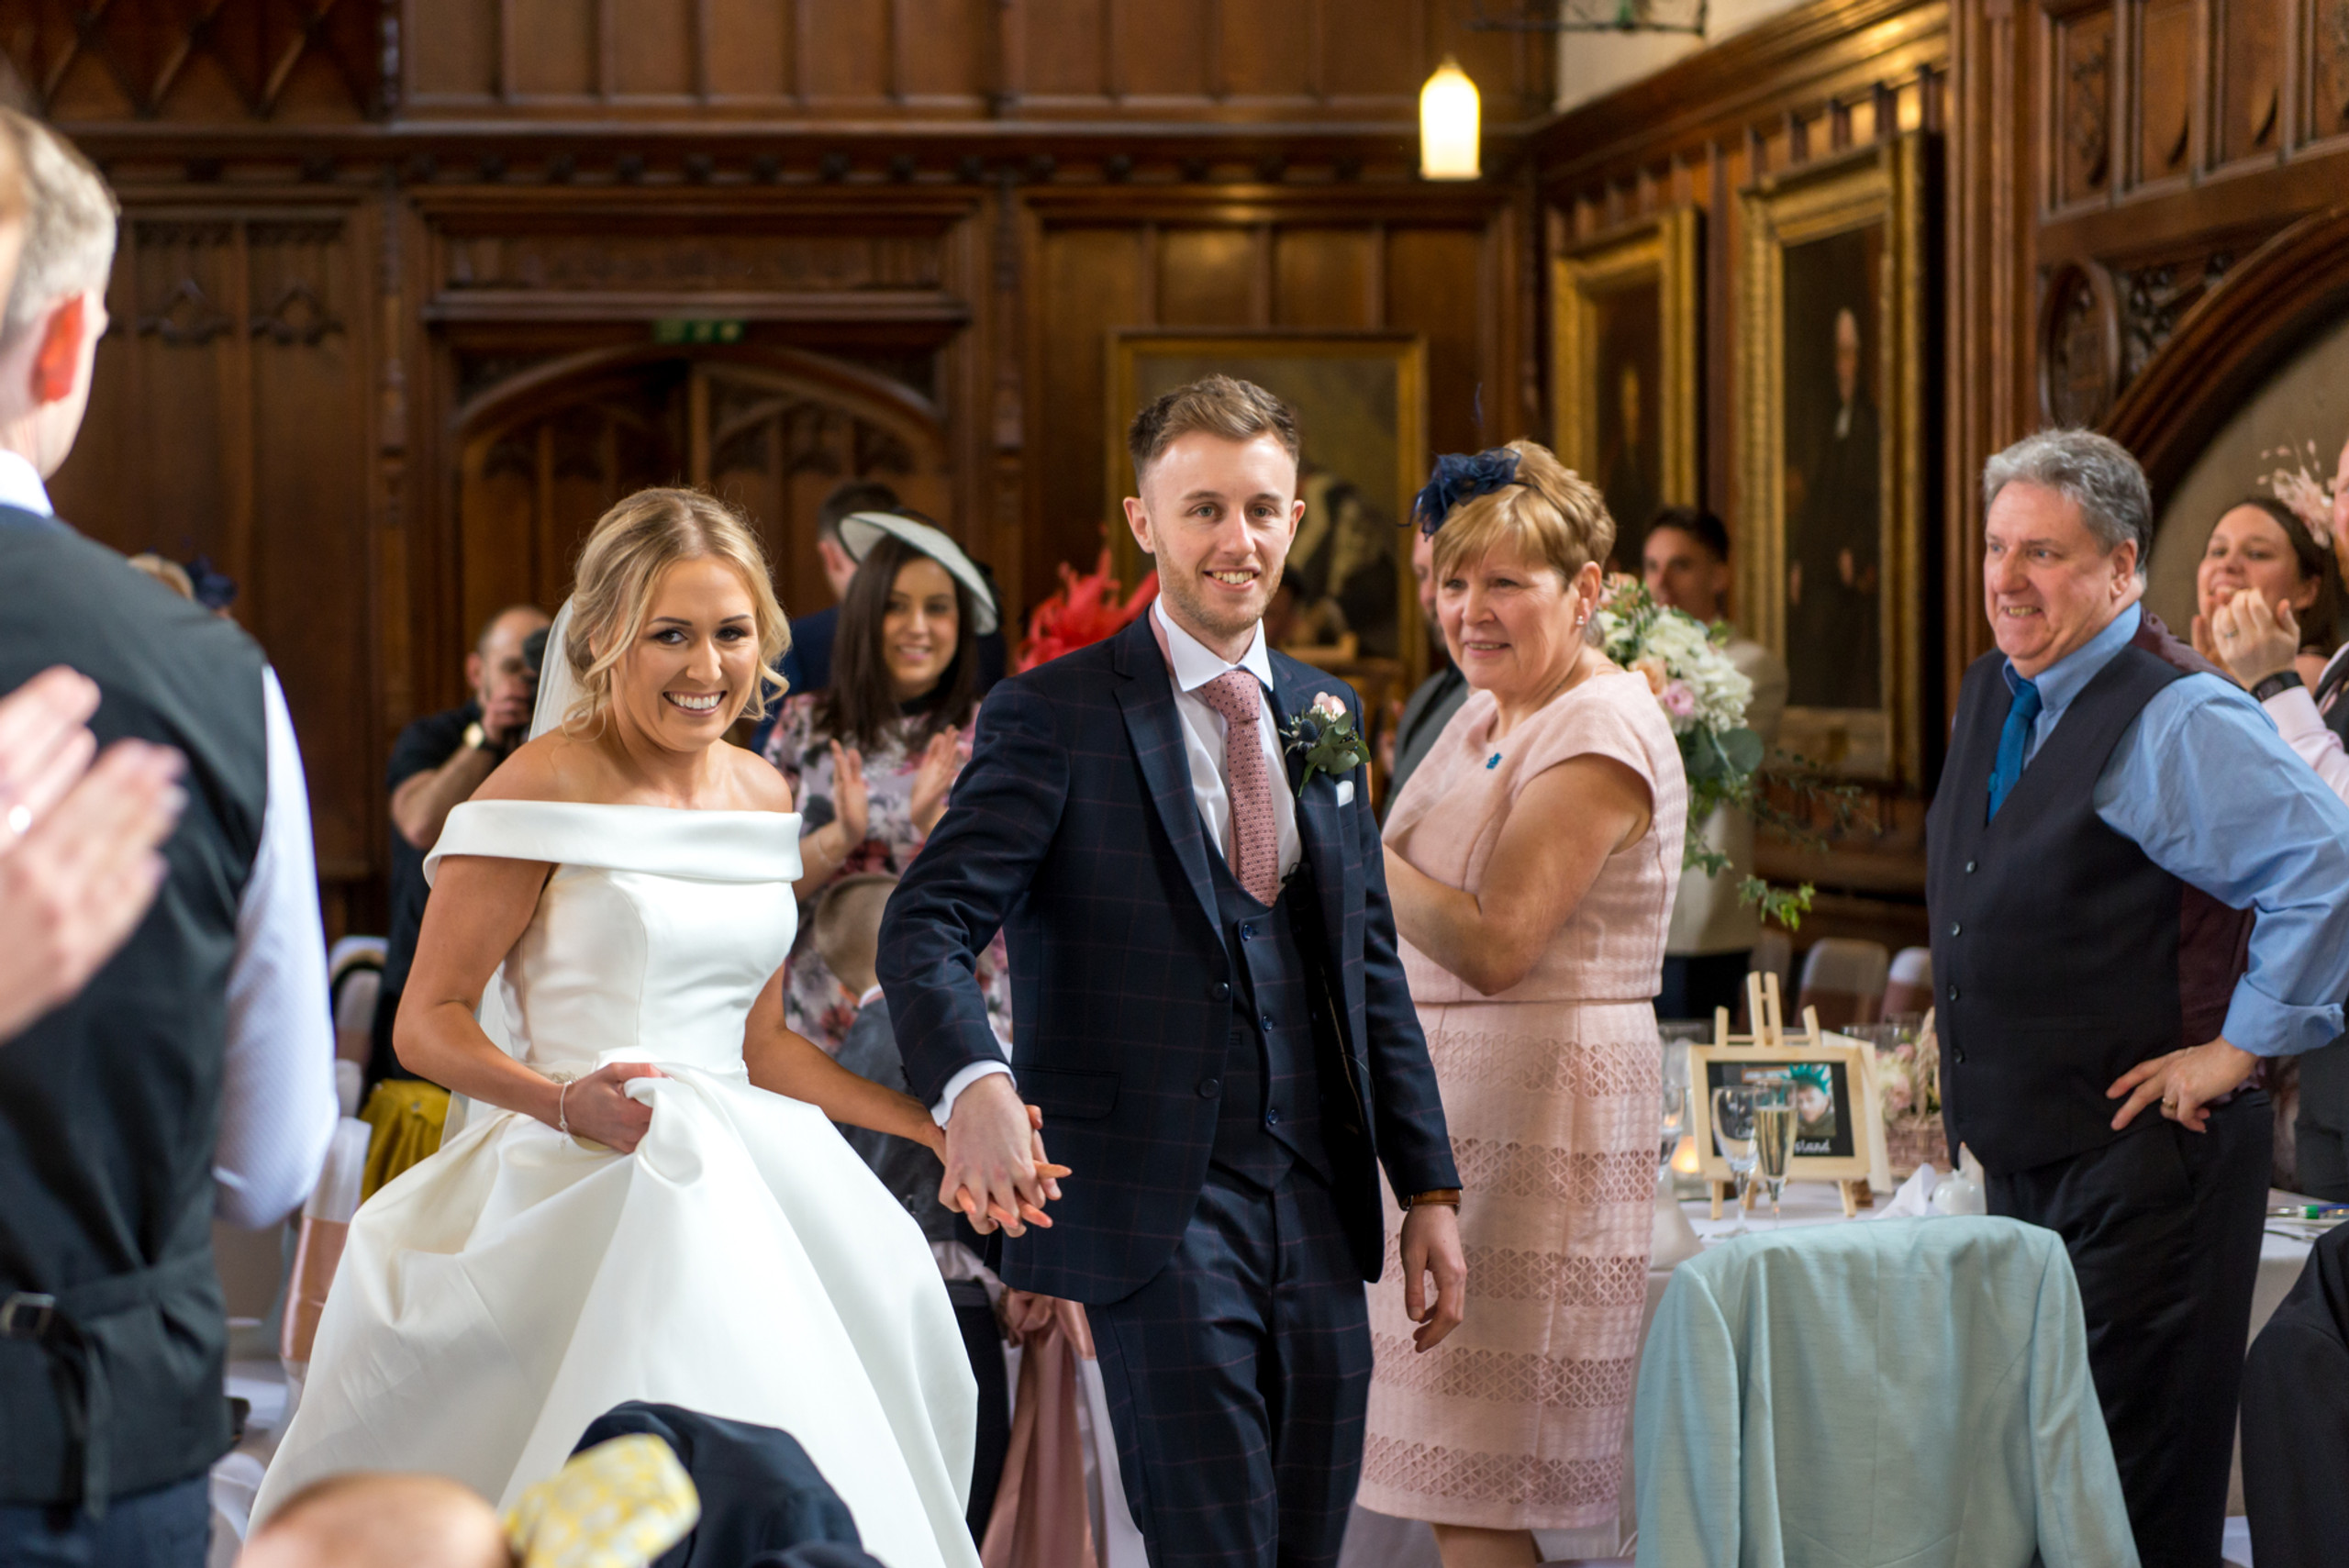 Relaxed wedding photography of bride and groom smiling as they enter Bishops Hall for wedding breakfast at historic venue Durham Castle in Durham City